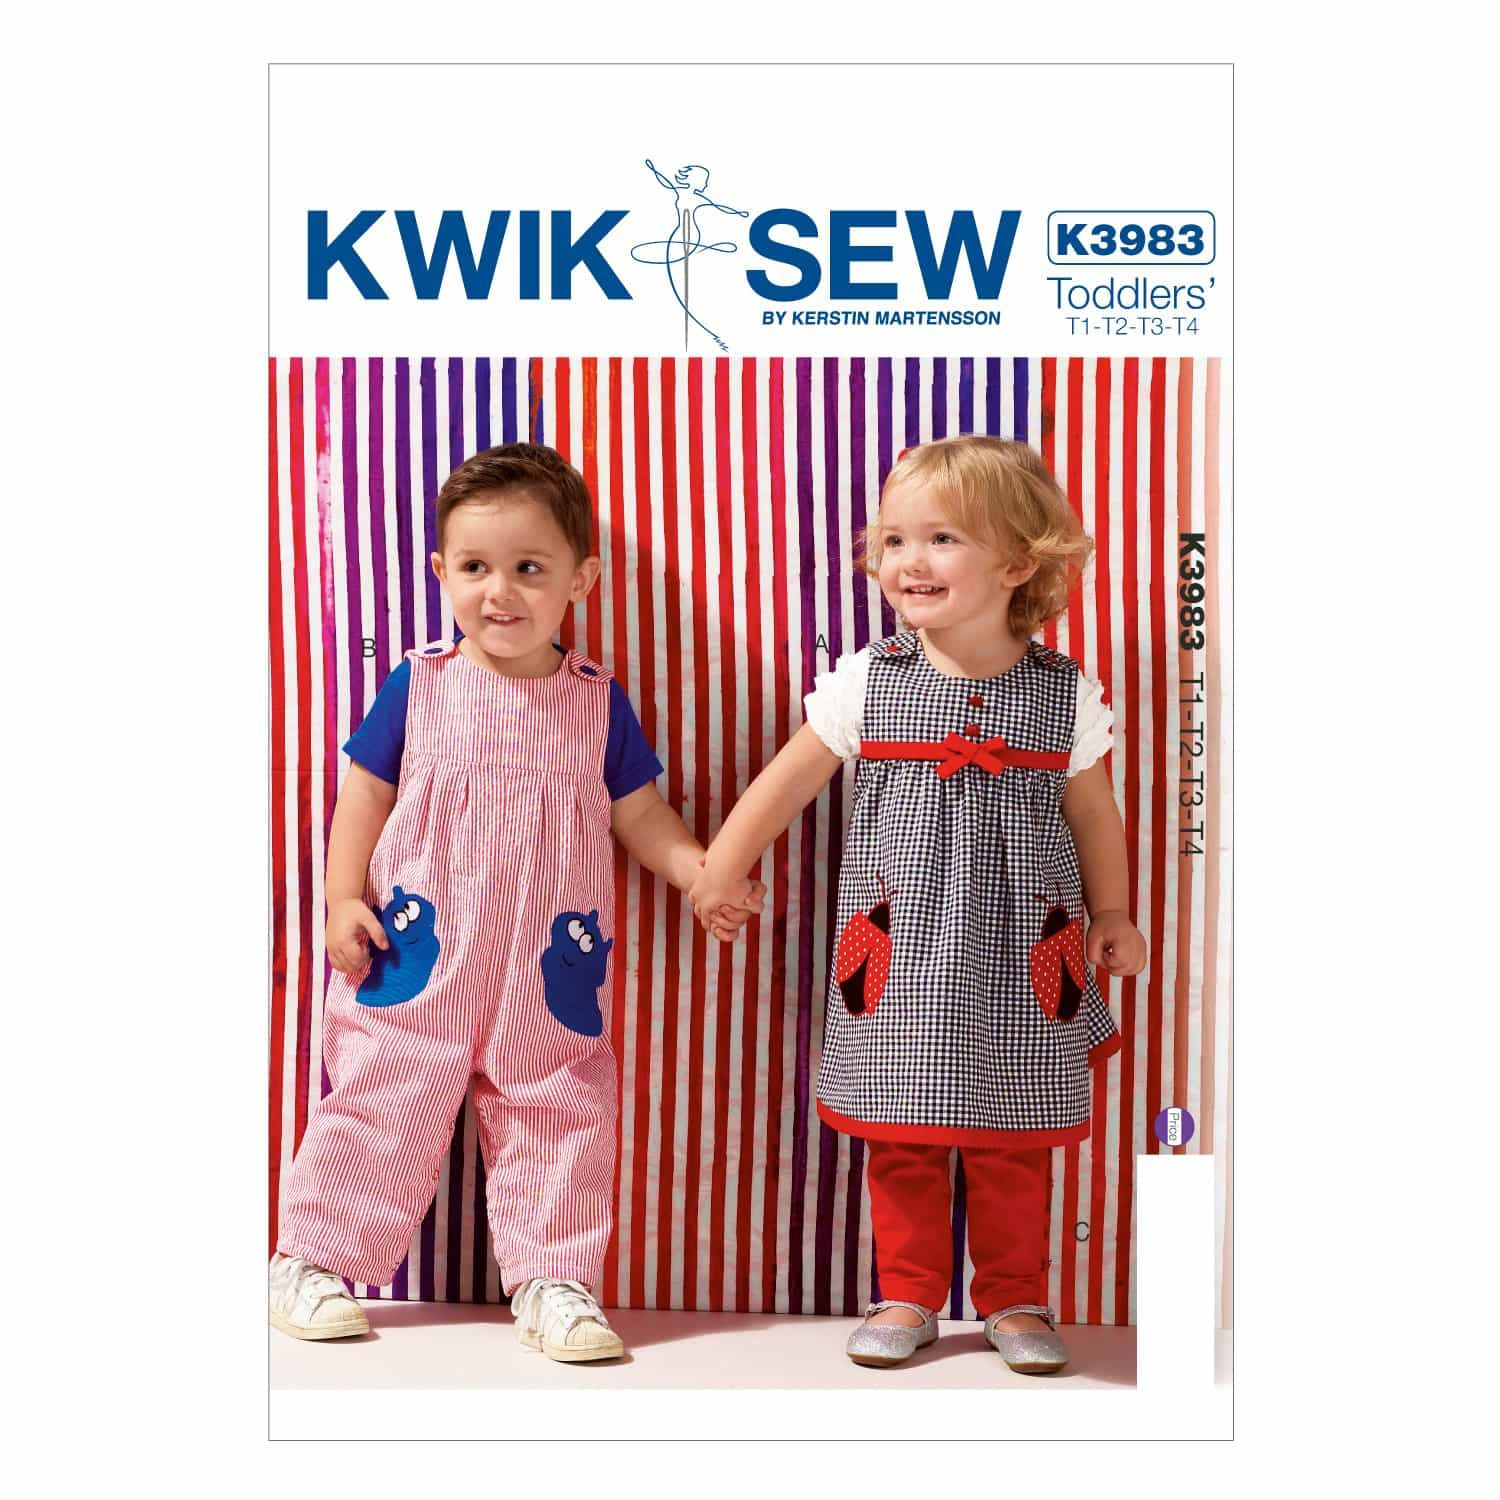 Kwik Sew Sewing Pattern K3983 Toddlers' Dress, Overalls and Pants